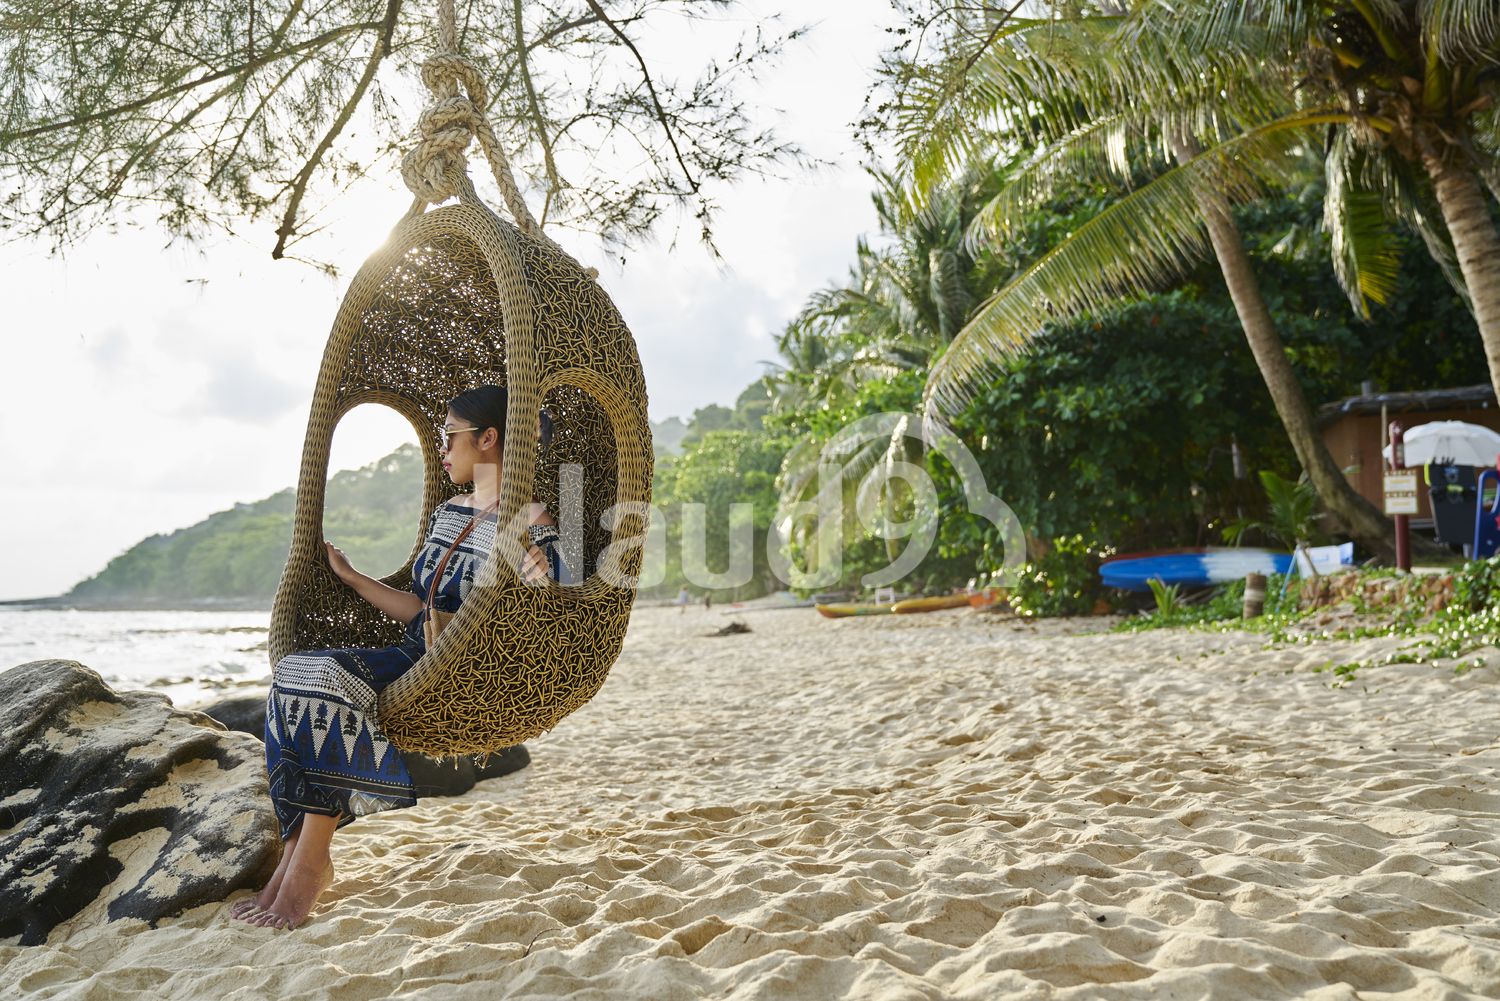 Young woman chilling by the beach in Koh Kood, Thailand